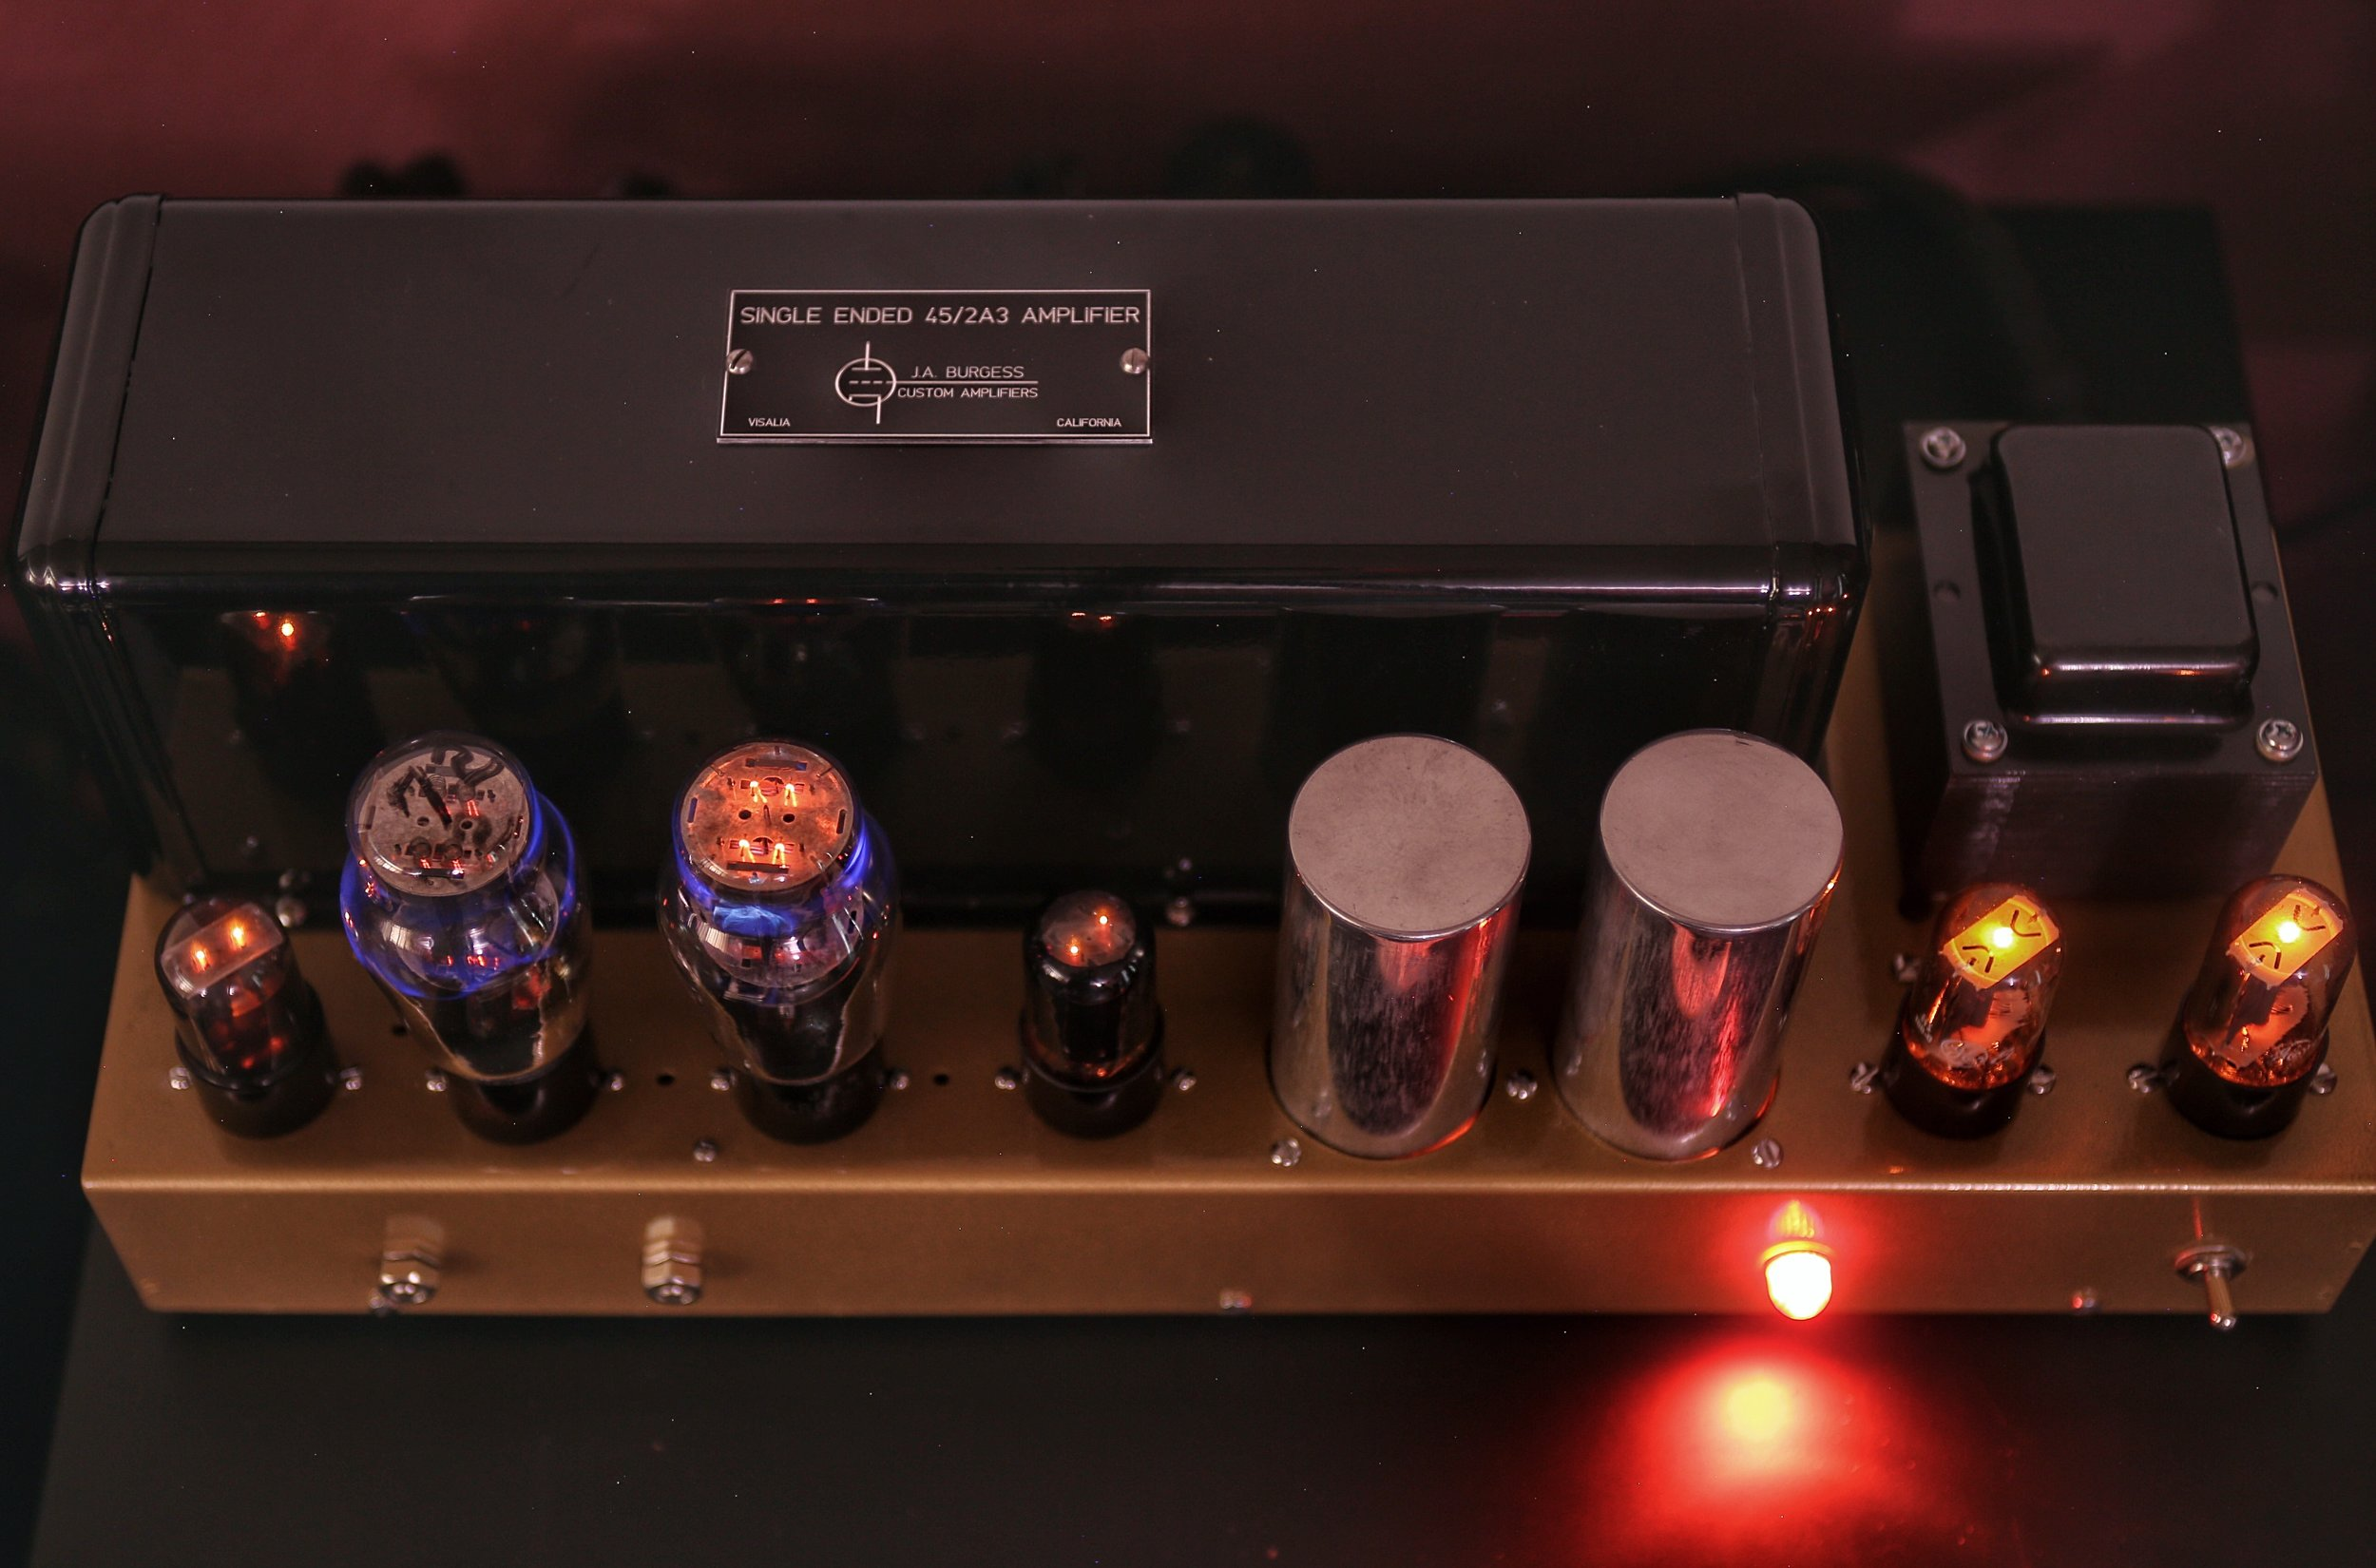 2A3 power triode's along with 12SL7 and 6AX4 tubes performing in all their glory!